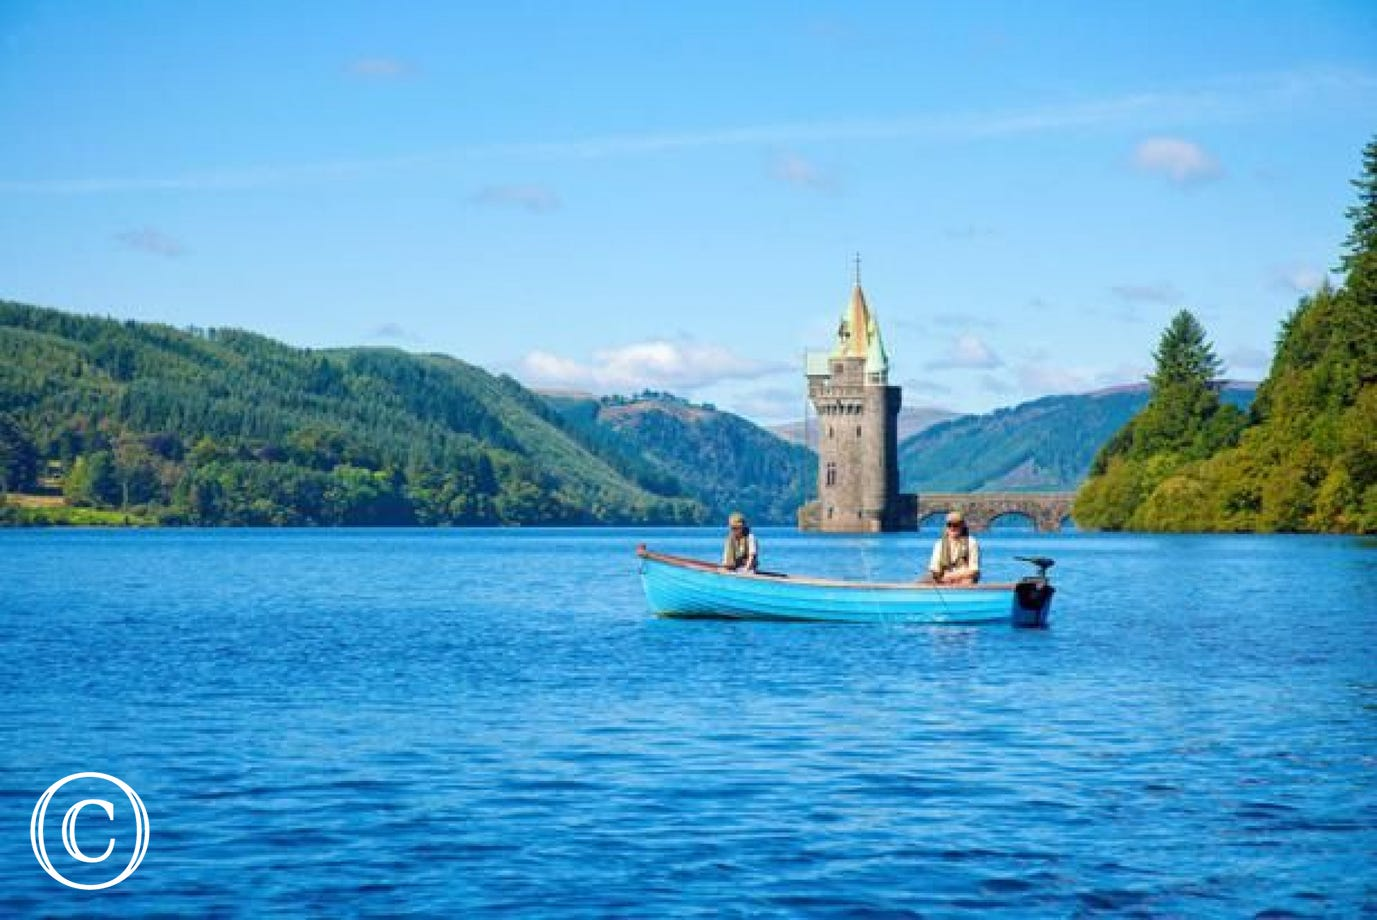 Why not hire a fishing boat and spend a relaxing day on Lake Vyrnwy